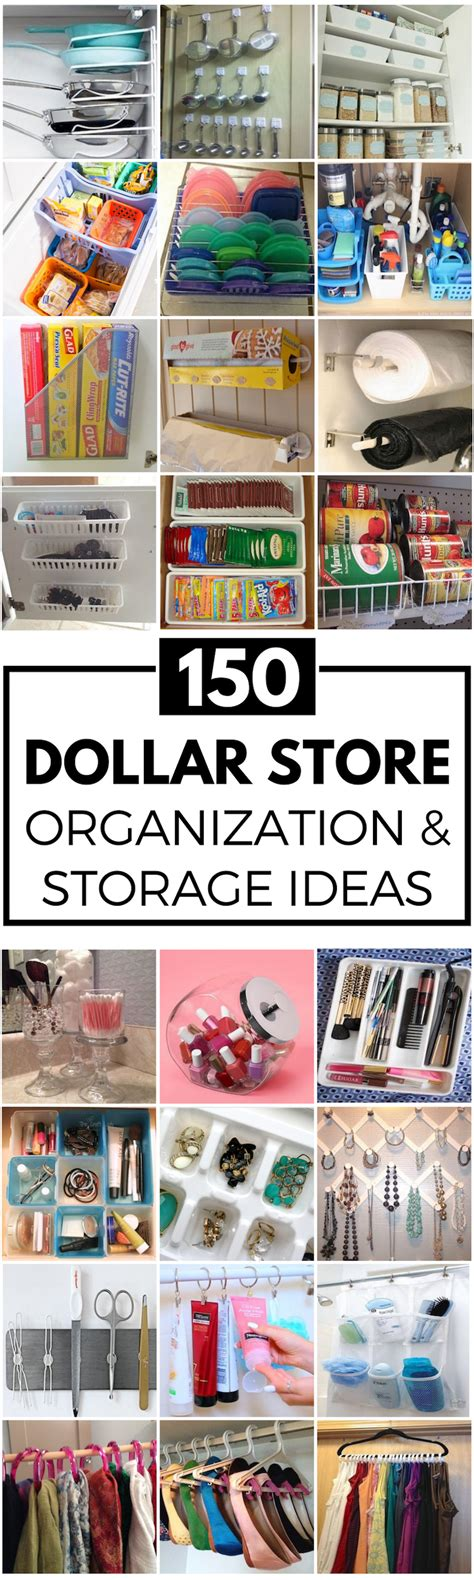 dollar store organization 150 diy dollar store organization and storage ideas